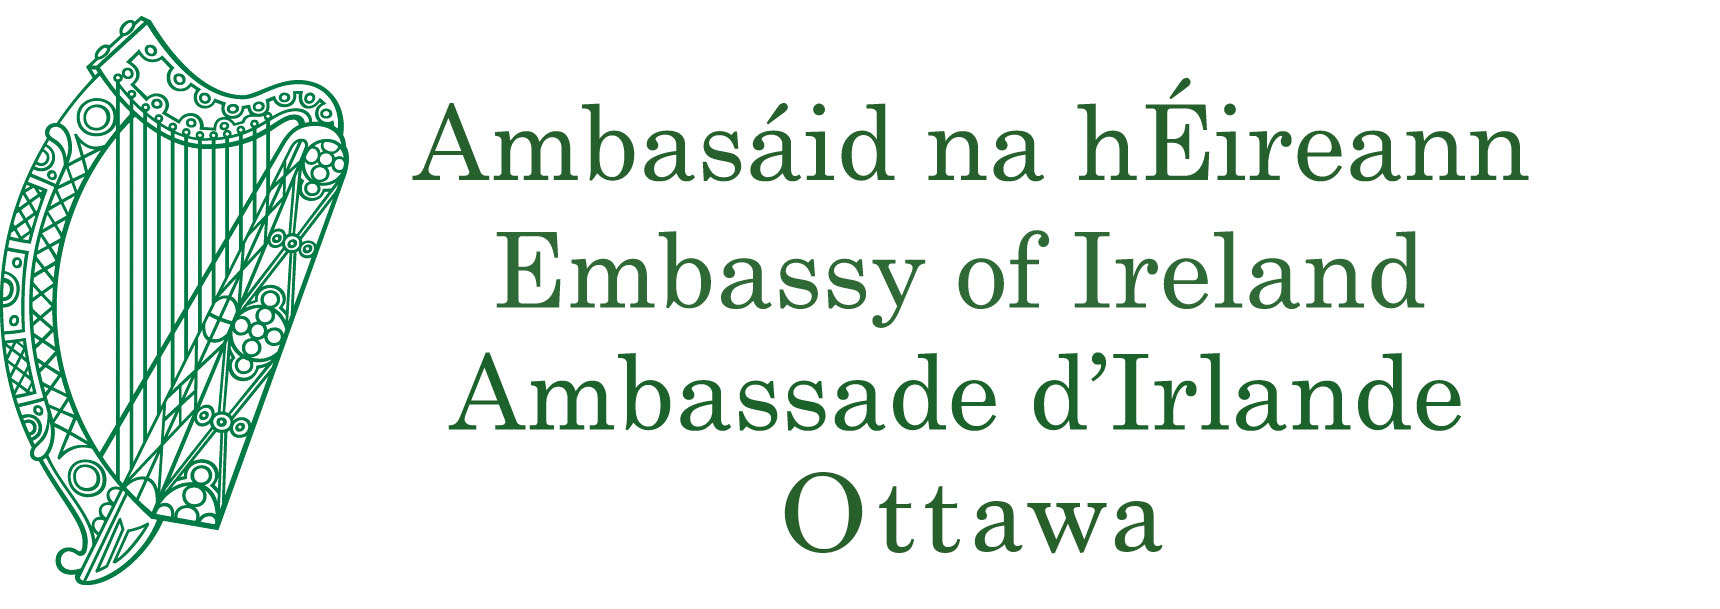 Embassy of Ireland in Ottawa